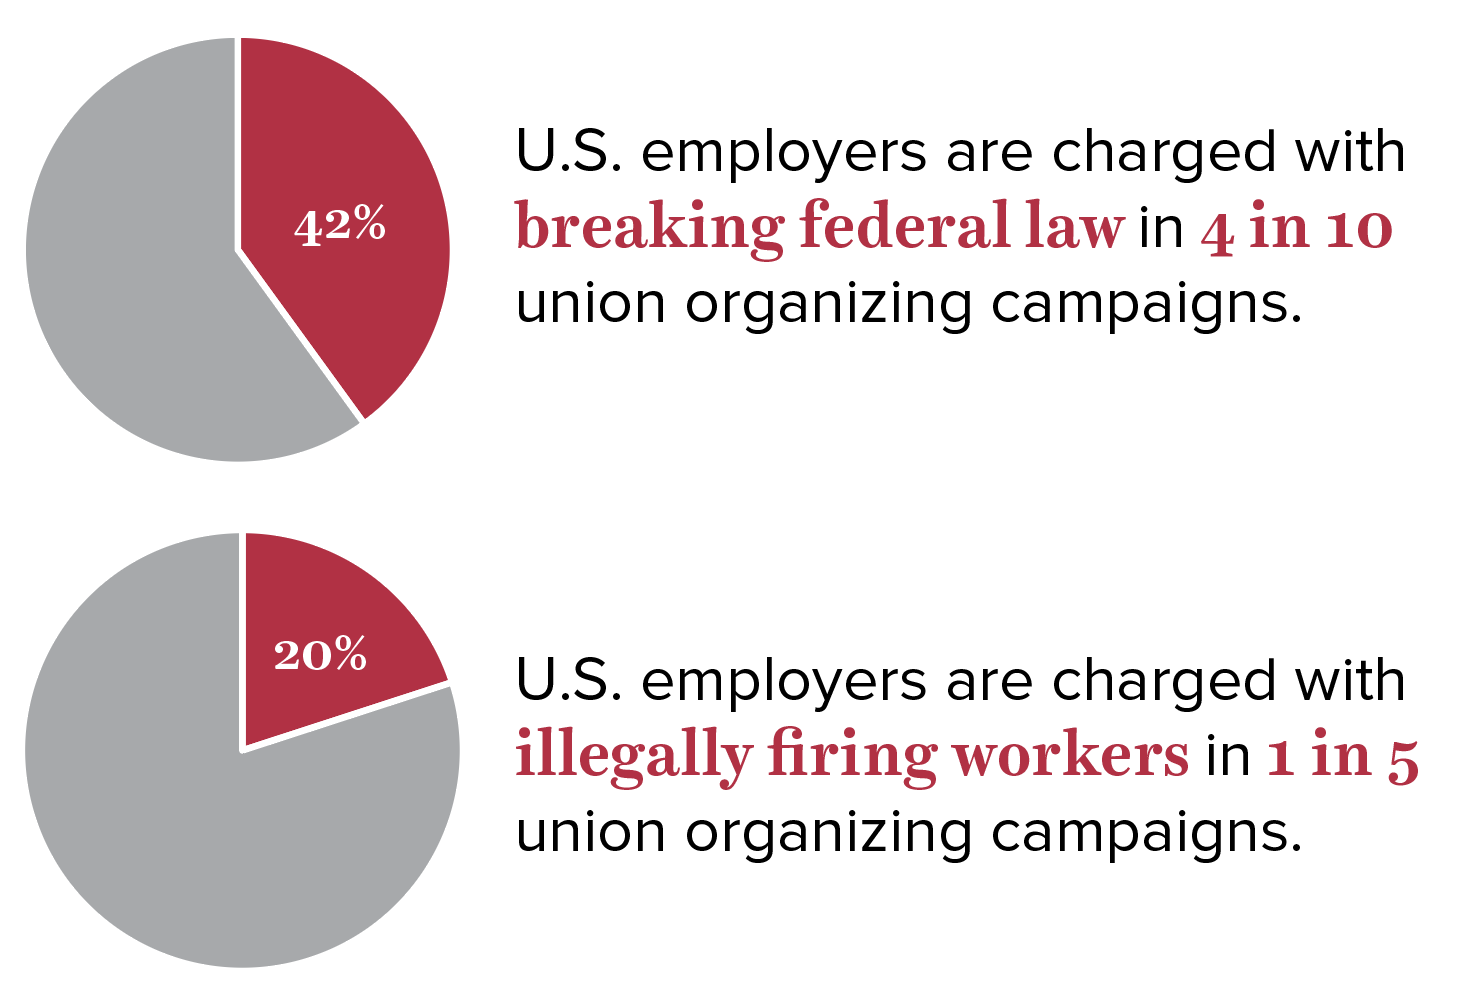 Employers routinely fire workers and use other illegal tactics to thwart workers' efforts to unionize